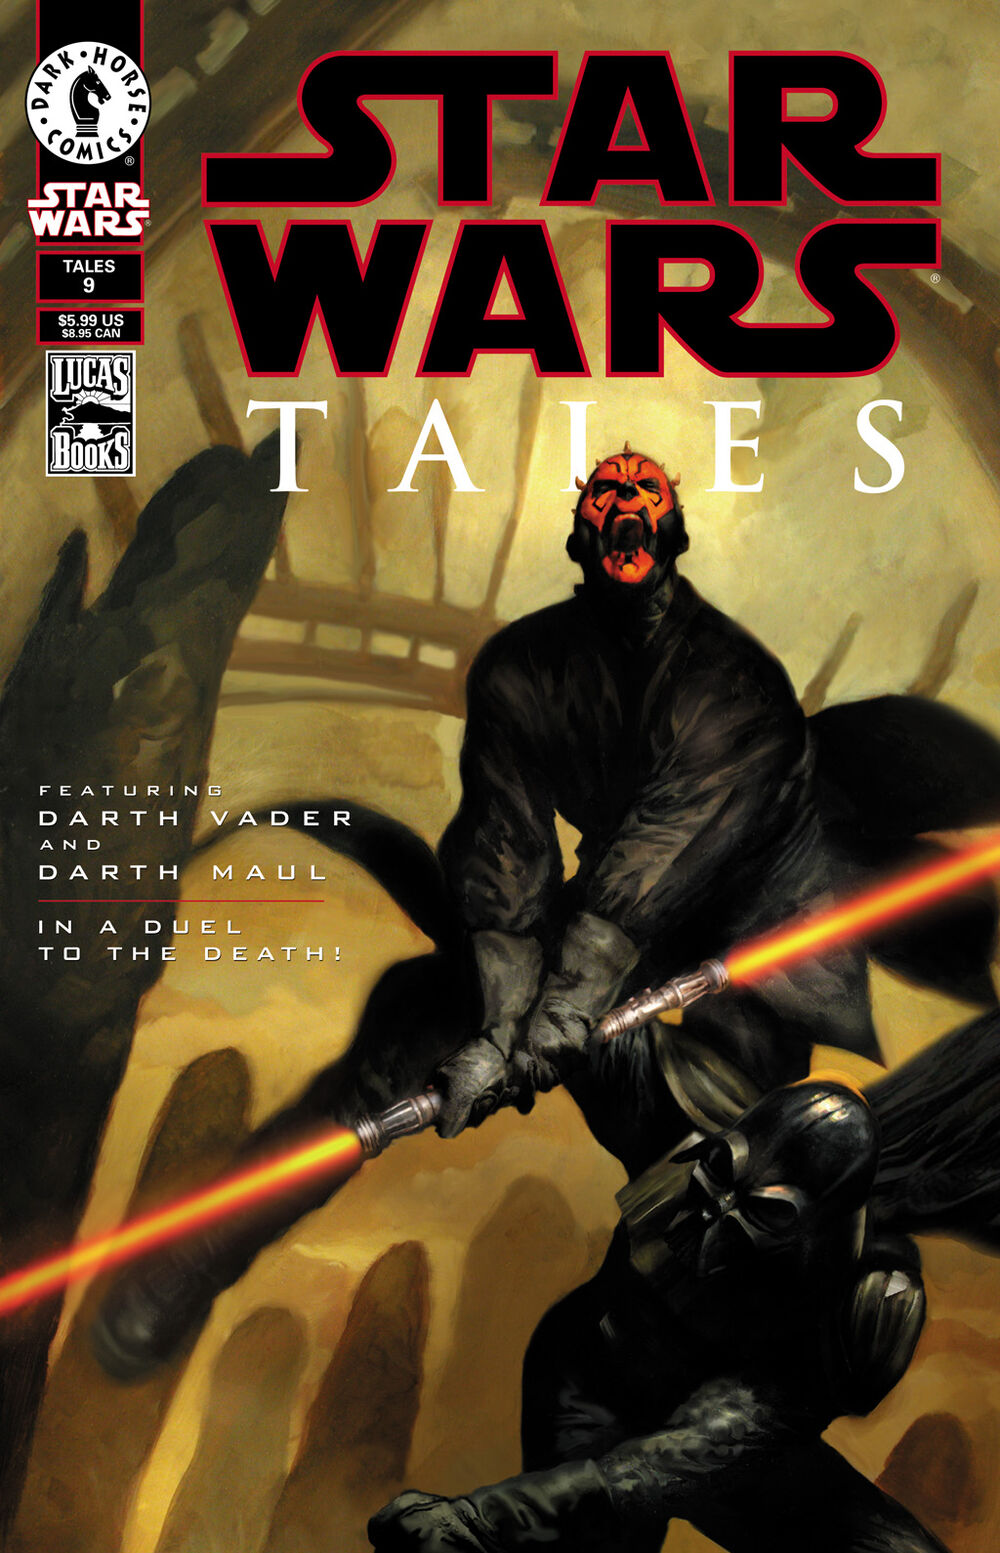 Star Wars Tales: Resurrection